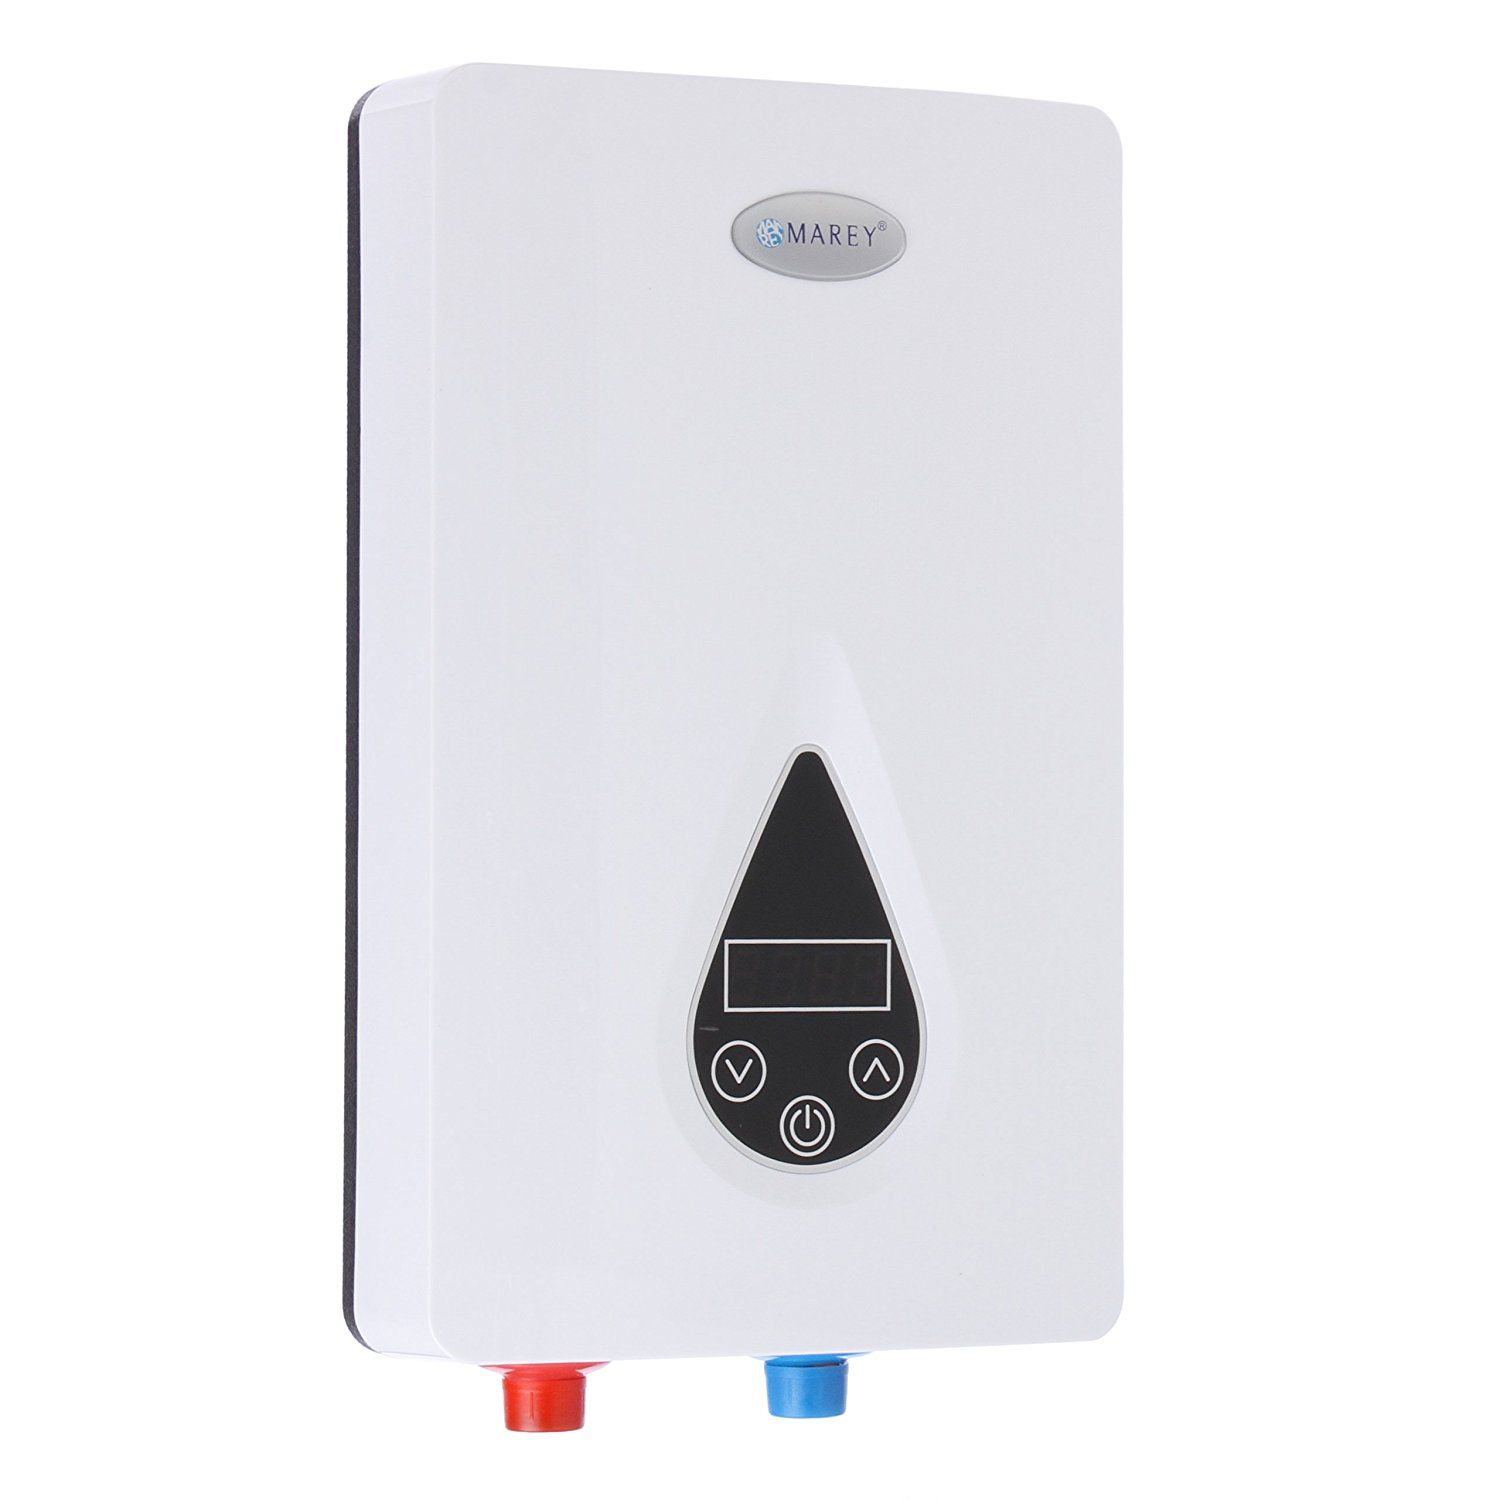 Marey Eco110 220v Self Modulating 11 Kw 3 0 Gpm Multiple Points Of Use Tankless Electric Tankless Hot Water Heater Tankless Water Heater Electric Water Heater